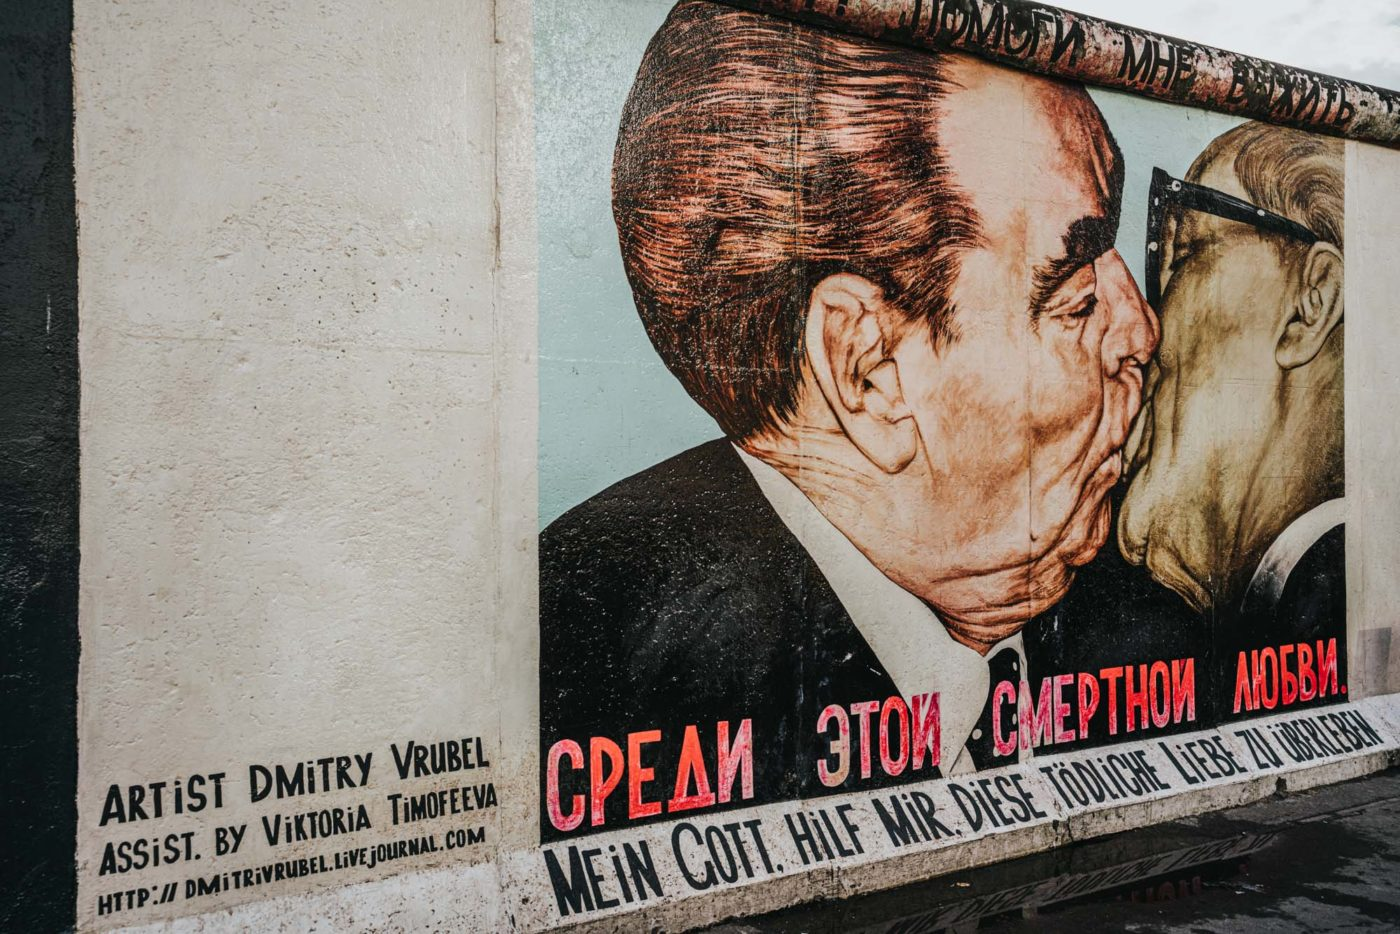 The Kiss, a famous painting at the East Side Gallery